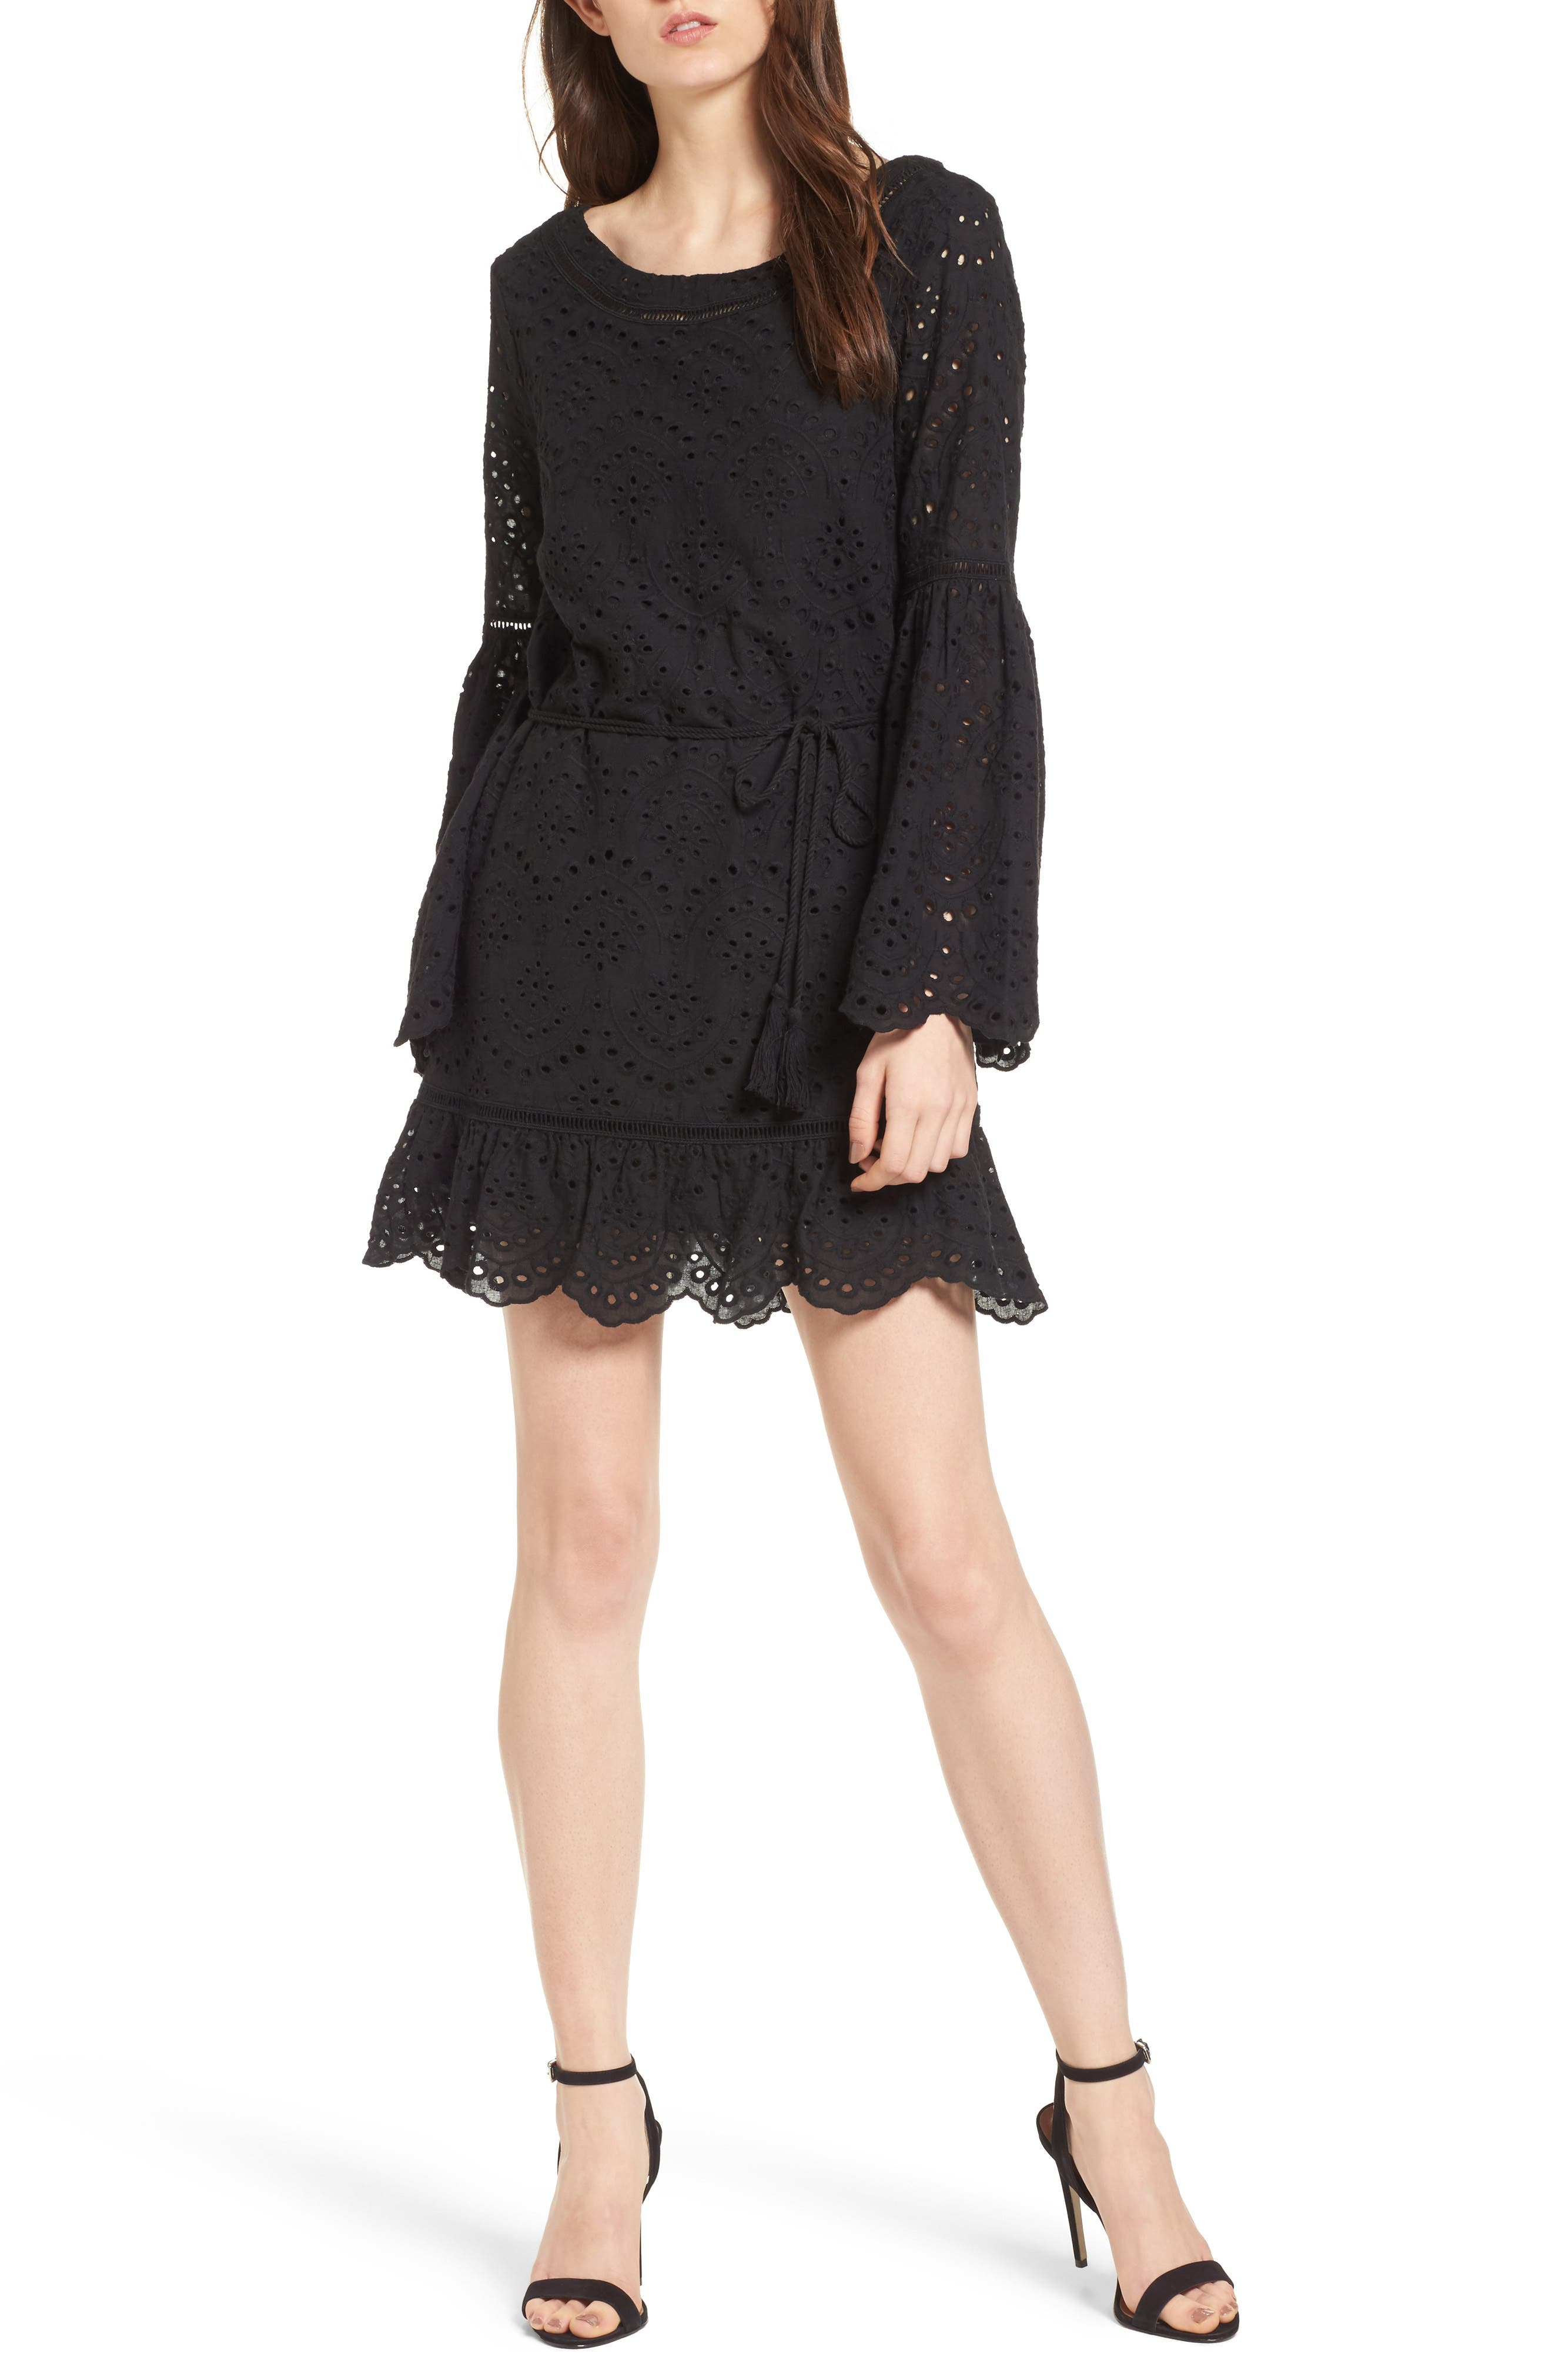 cupcakes and cashmere Ruben Broderie Dress